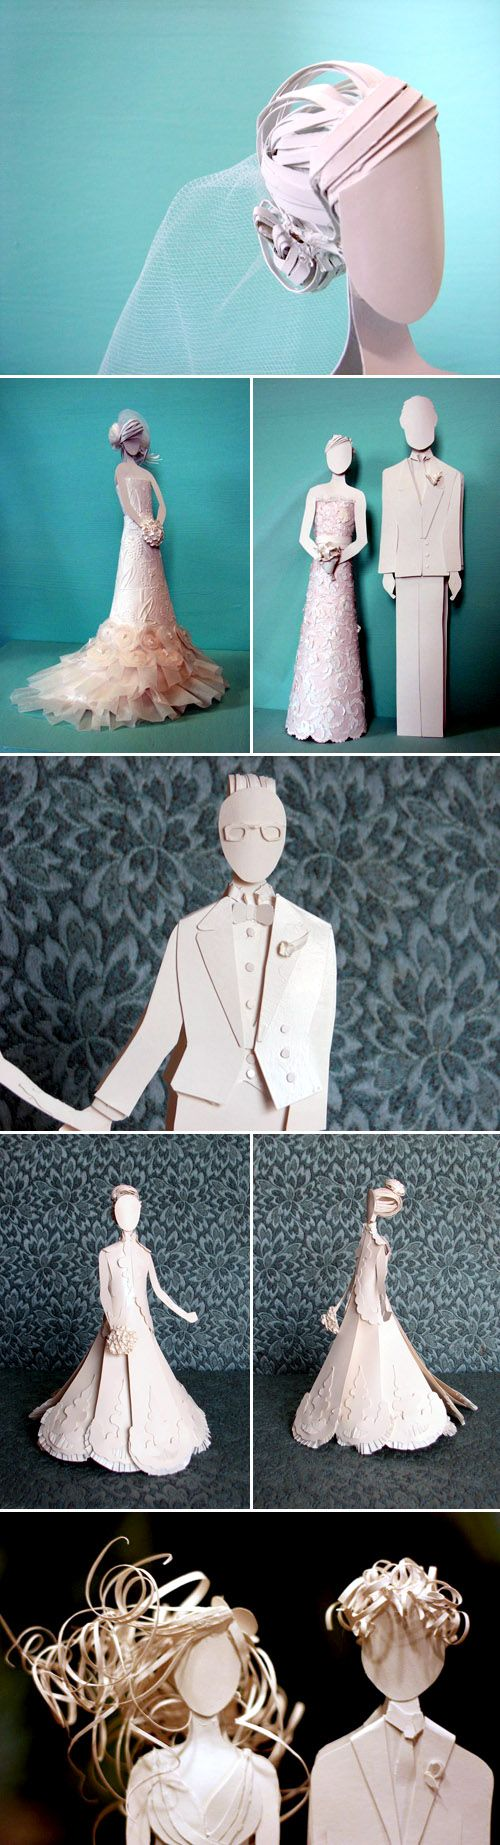 paper wedding cake topper and custom paper wedding dresses by Paper, Gowns and Glory